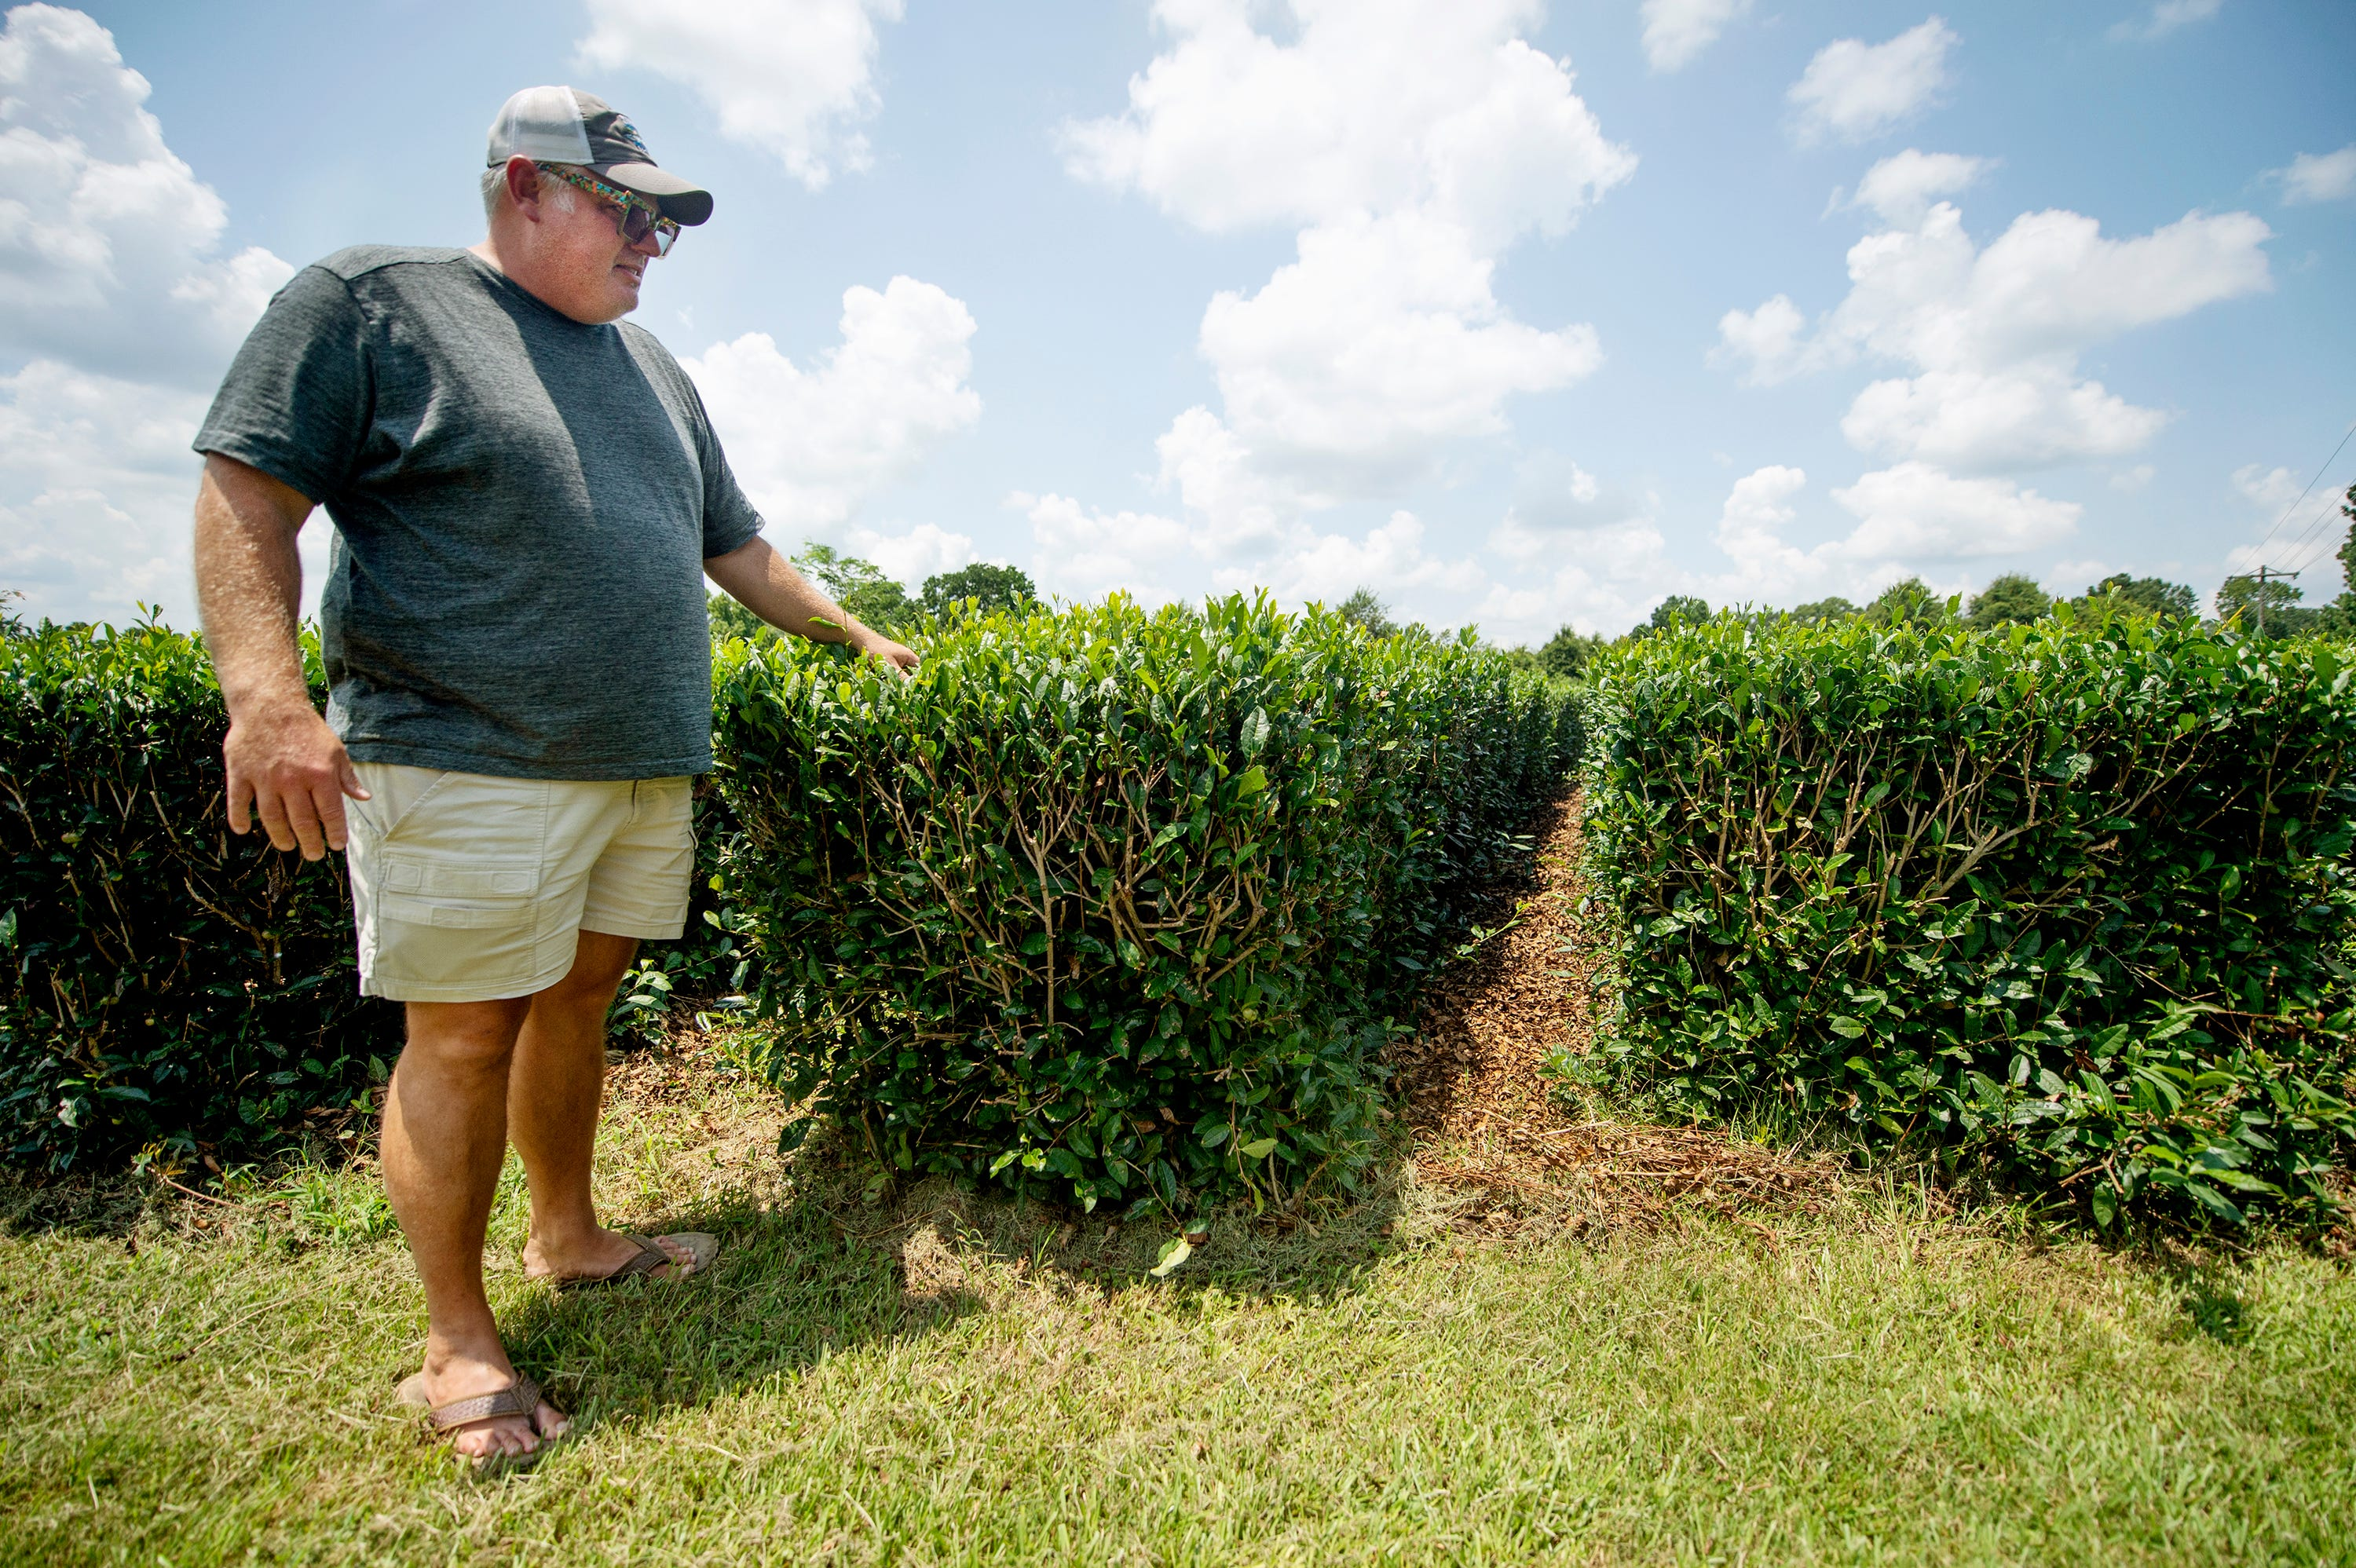 Jason McDonald stands next to rows of tea plants on his farm.